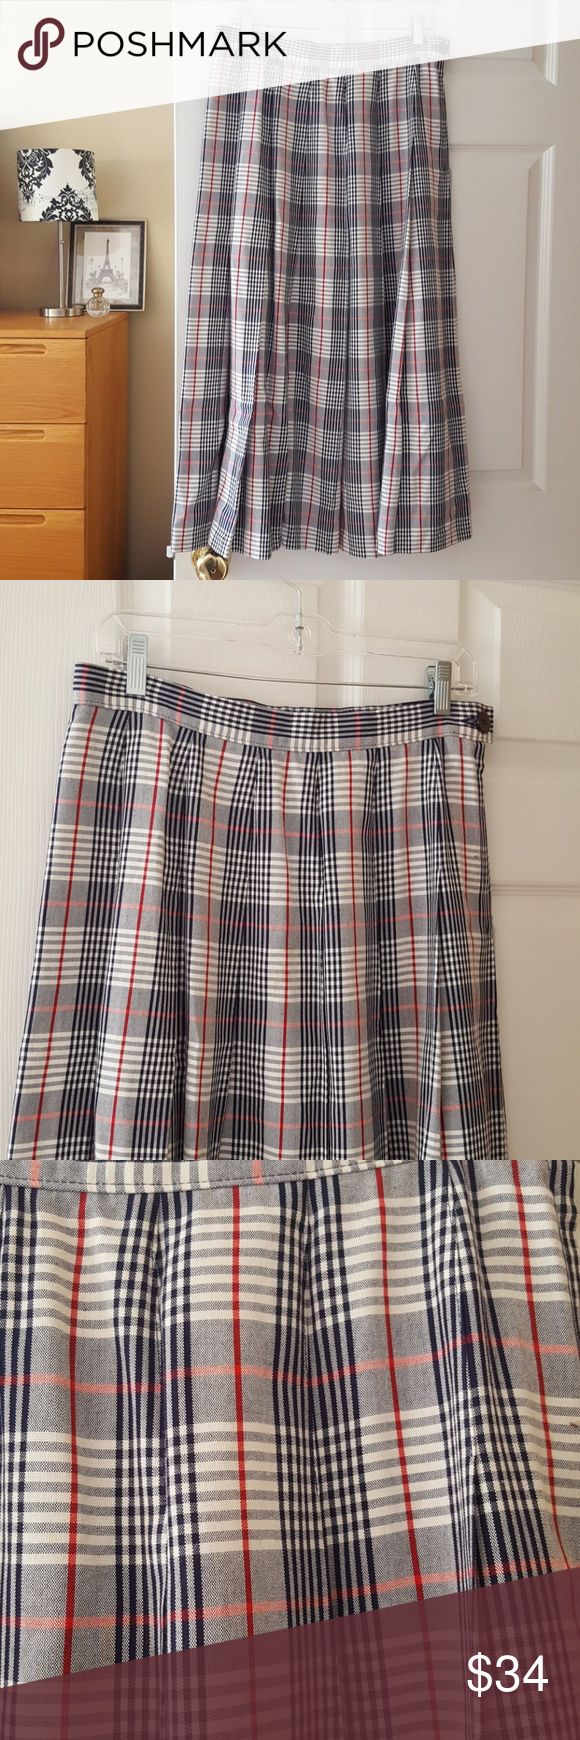 """FREE SHIPPING! pendleton vintage plaid midi skirt Waist: 15"""" laying flat Length: 34"""" 100% rayon Smoke-free home Excellent used condition Made in USA   -Reasonable offers welcome, but prices are firm on items under $10.  -No trades, please.  Thank you for shopping my closet, it means a lot to me! Pendleton Skirts Midi"""